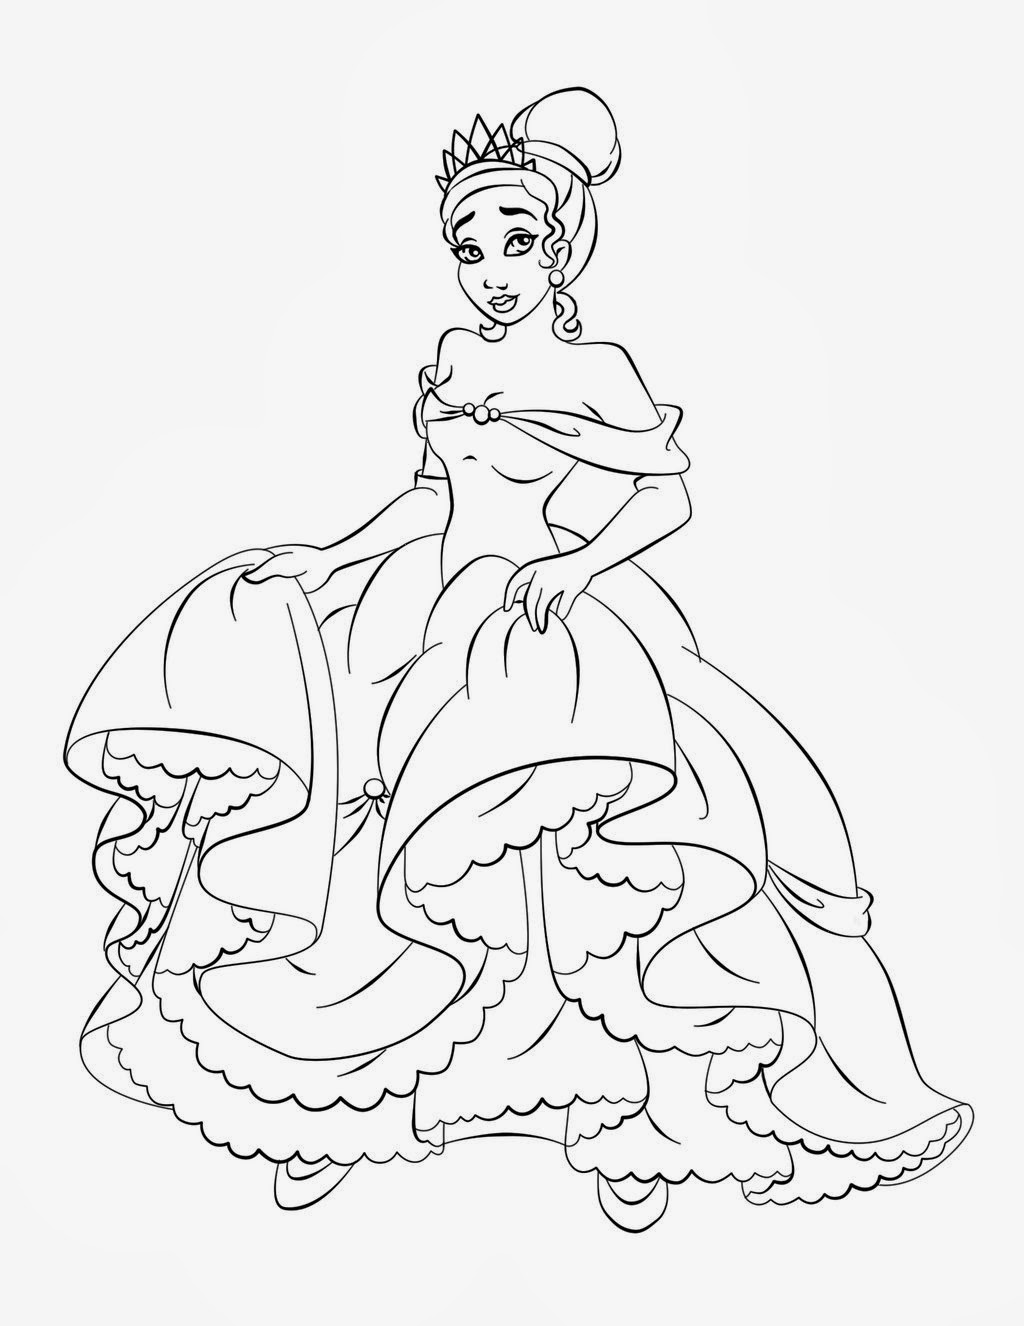 Princess Tiana And The Frog Coloring Pages Free Princess And The Frog Free Free Coloring Sheets